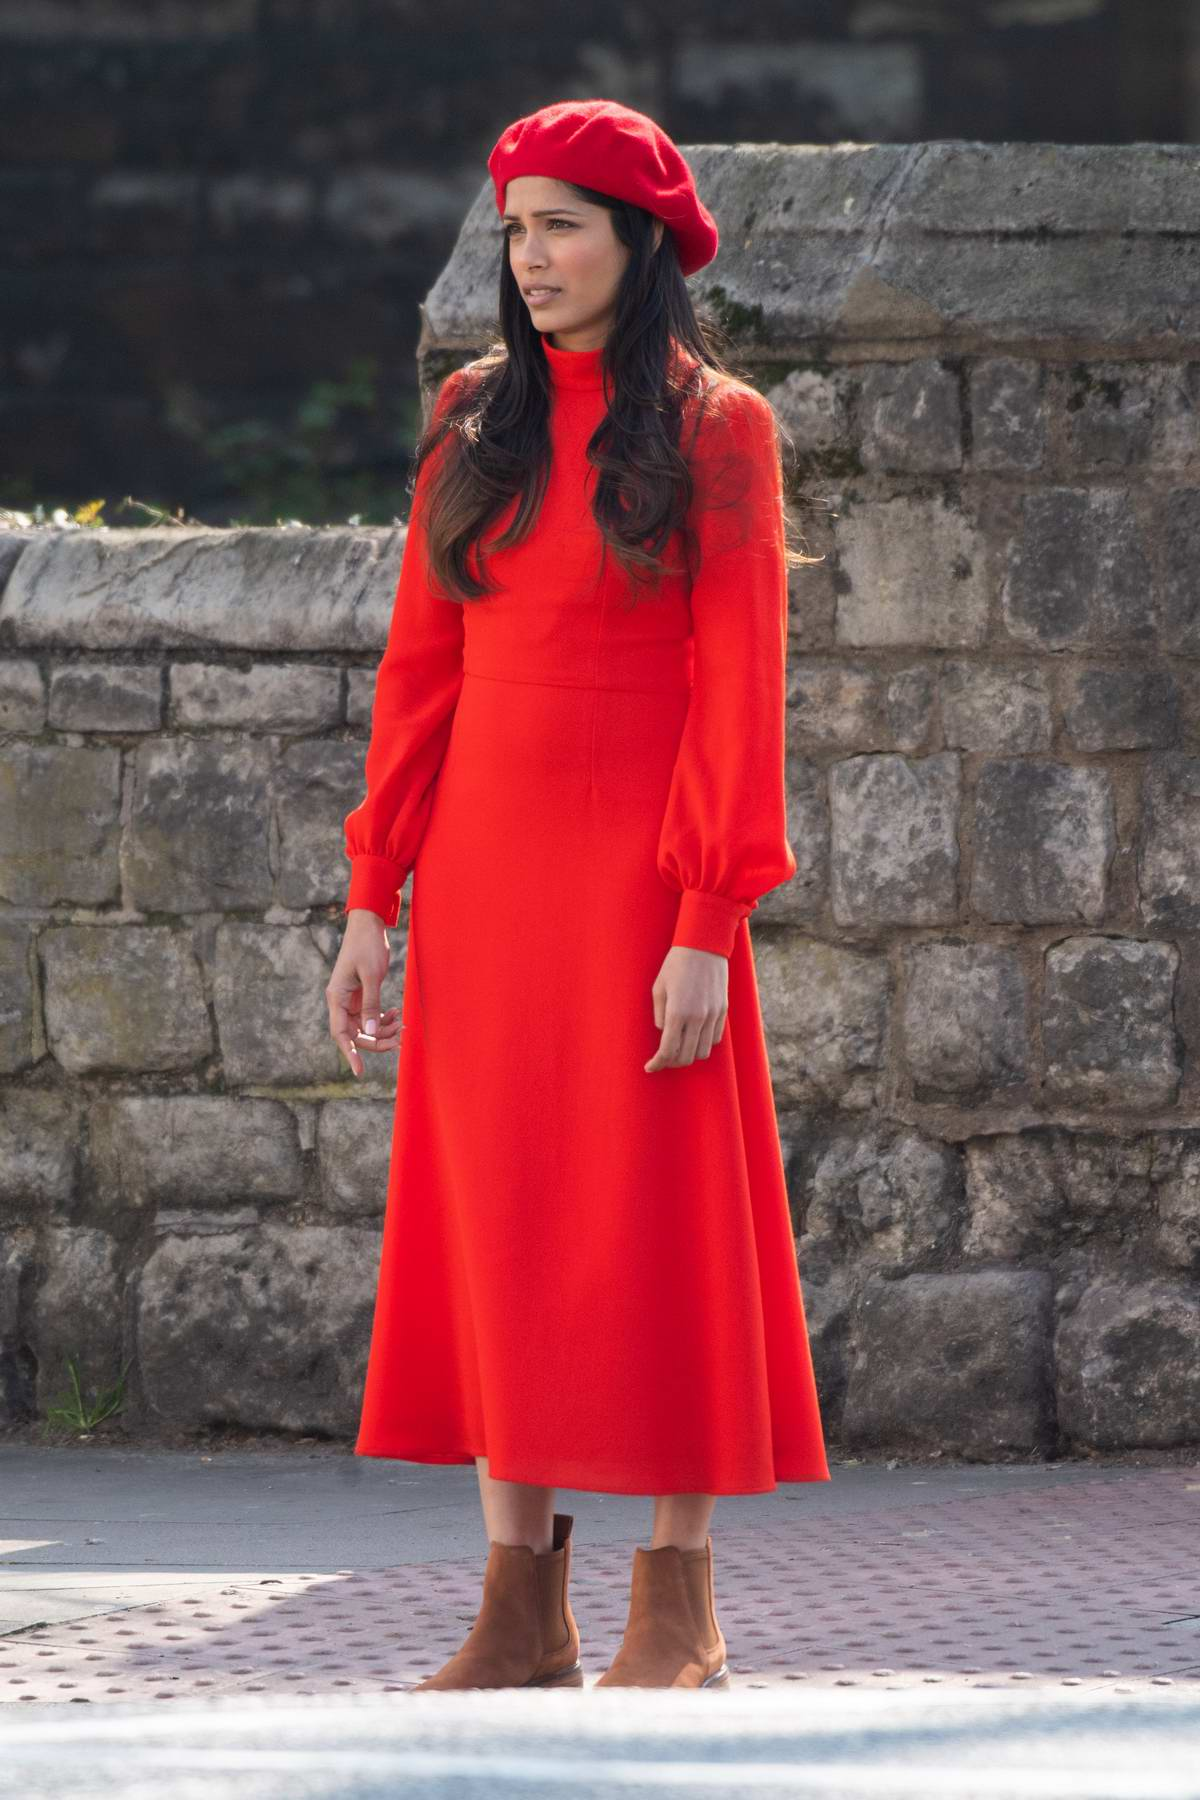 Freida Pinto stands out in red during a film shoot in Primrose Hill, London, UK